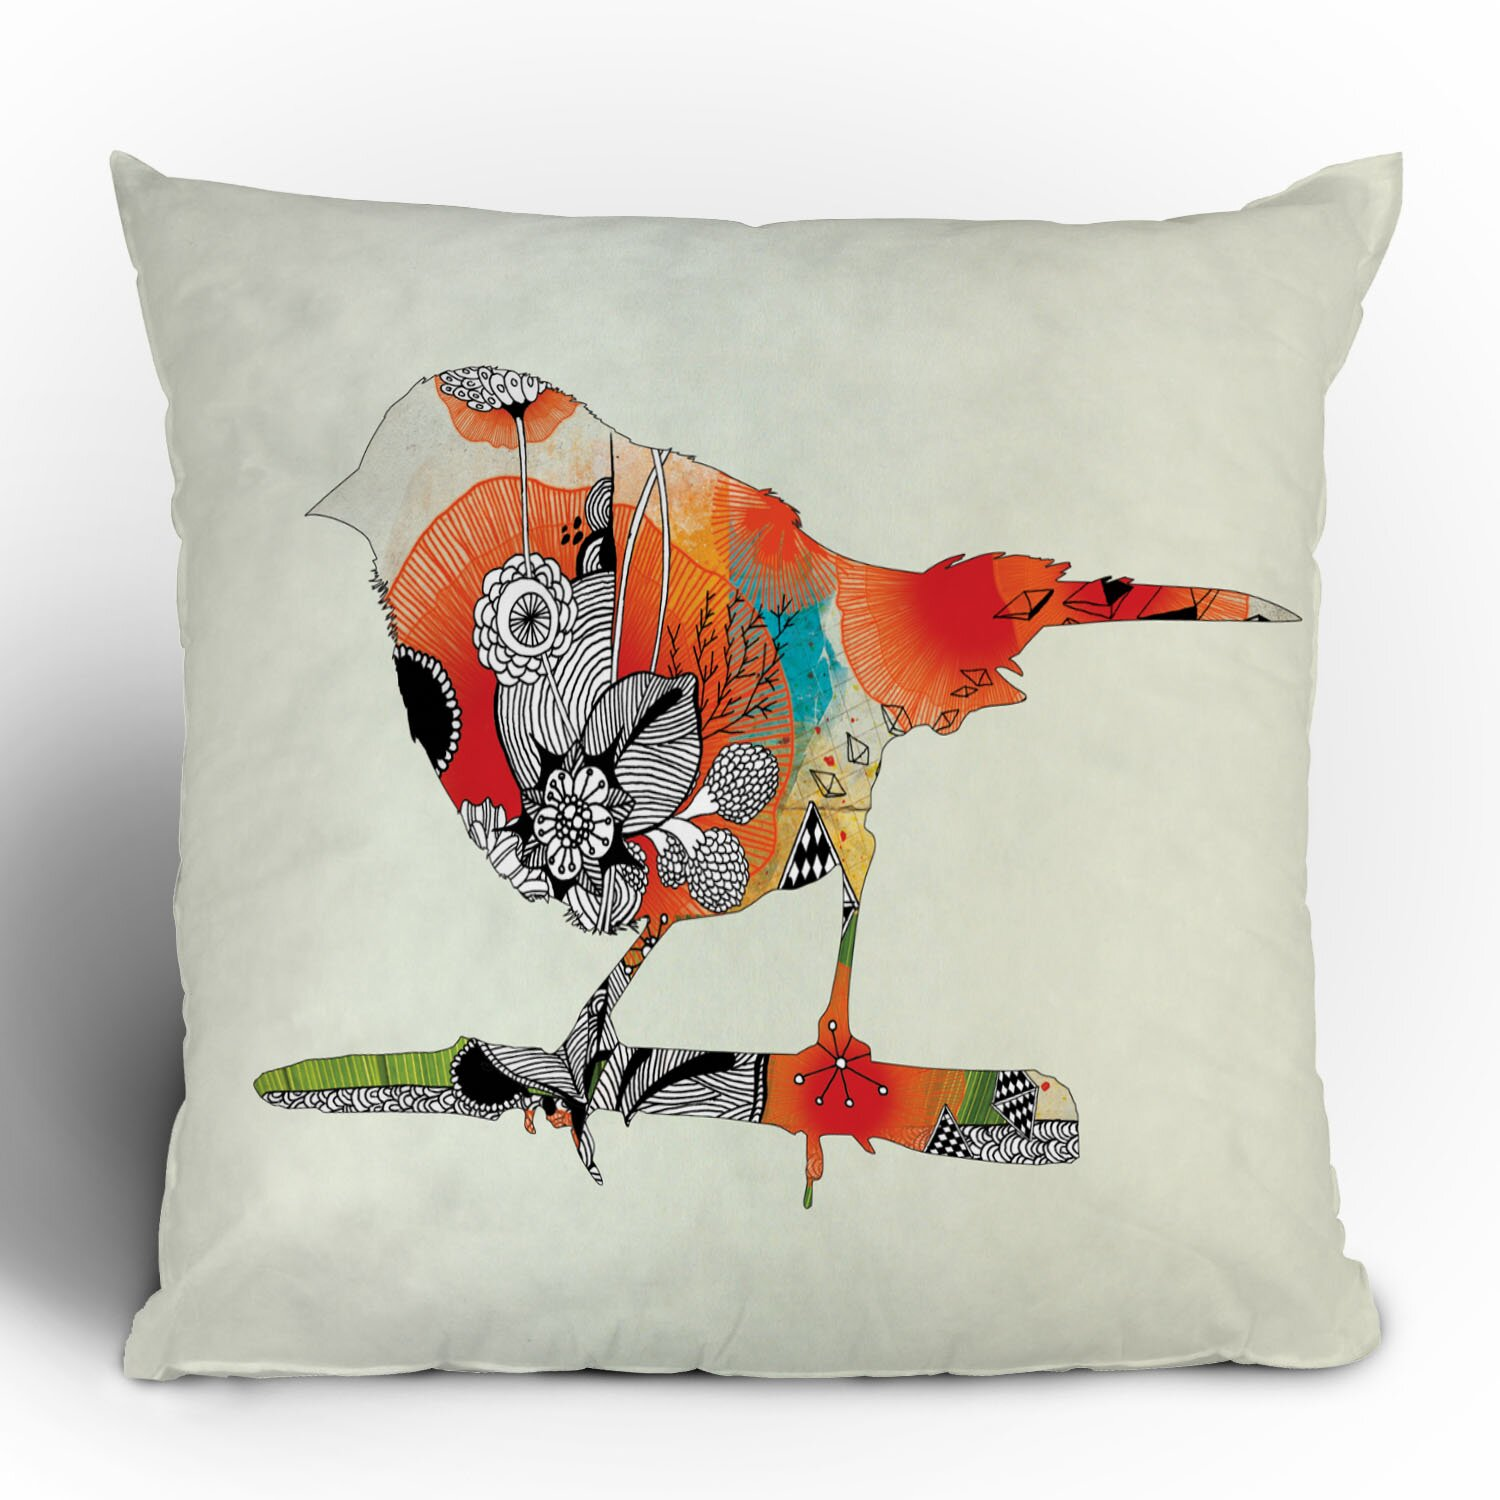 Decorative Pillow Designs : DENY Designs Iveta Abolina Little Bird Throw Pillow & Reviews Wayfair